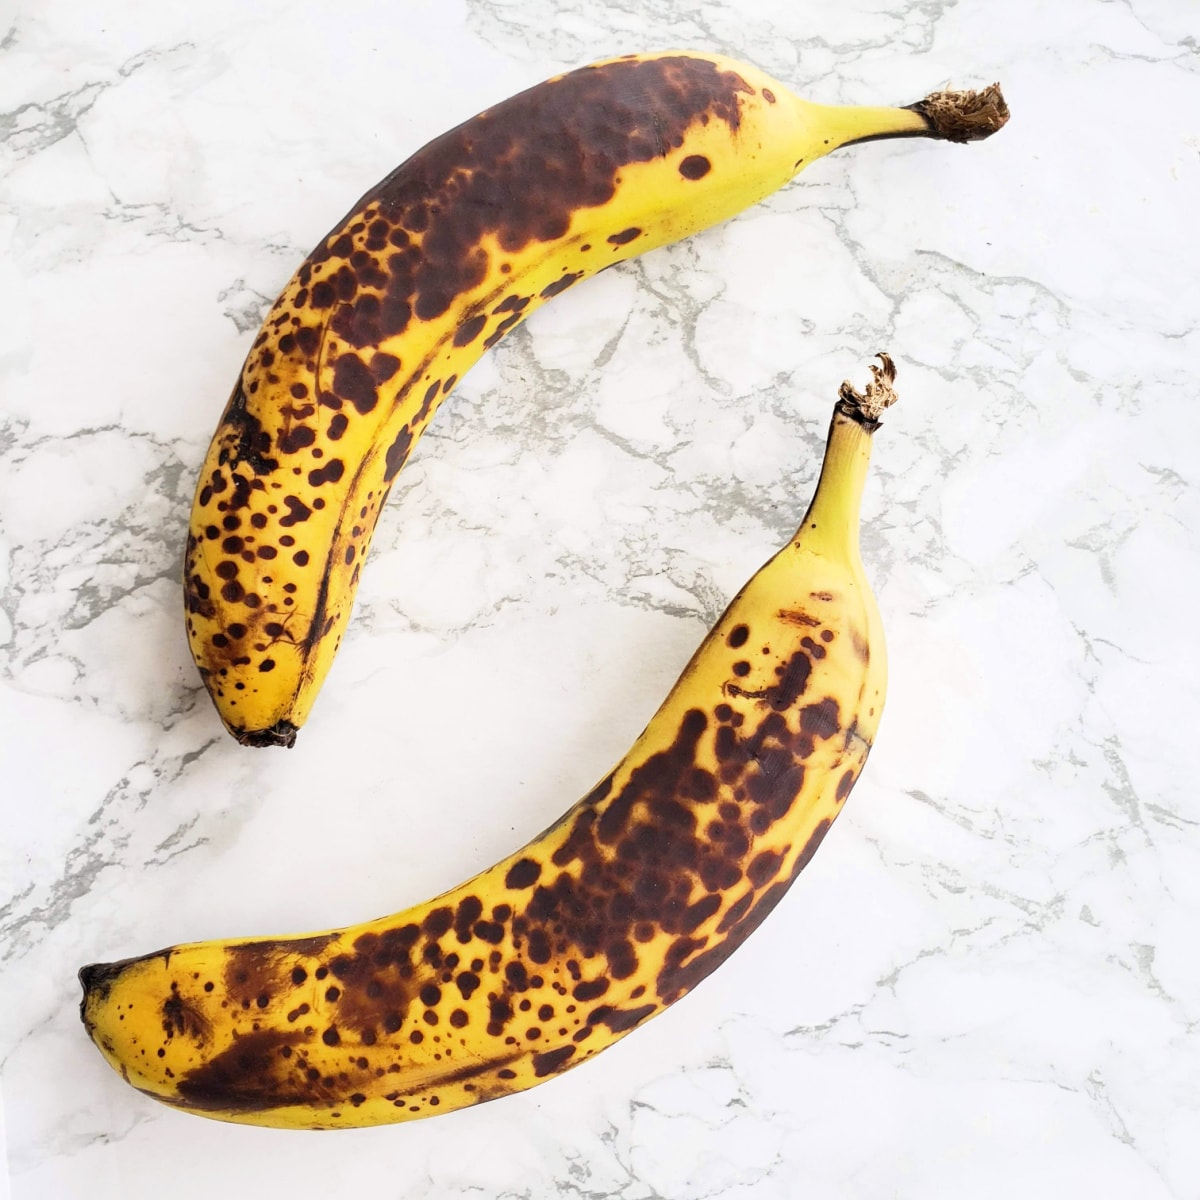 2 speckled ripe bananas on a white marble counter on ShockinglyDelicious.com